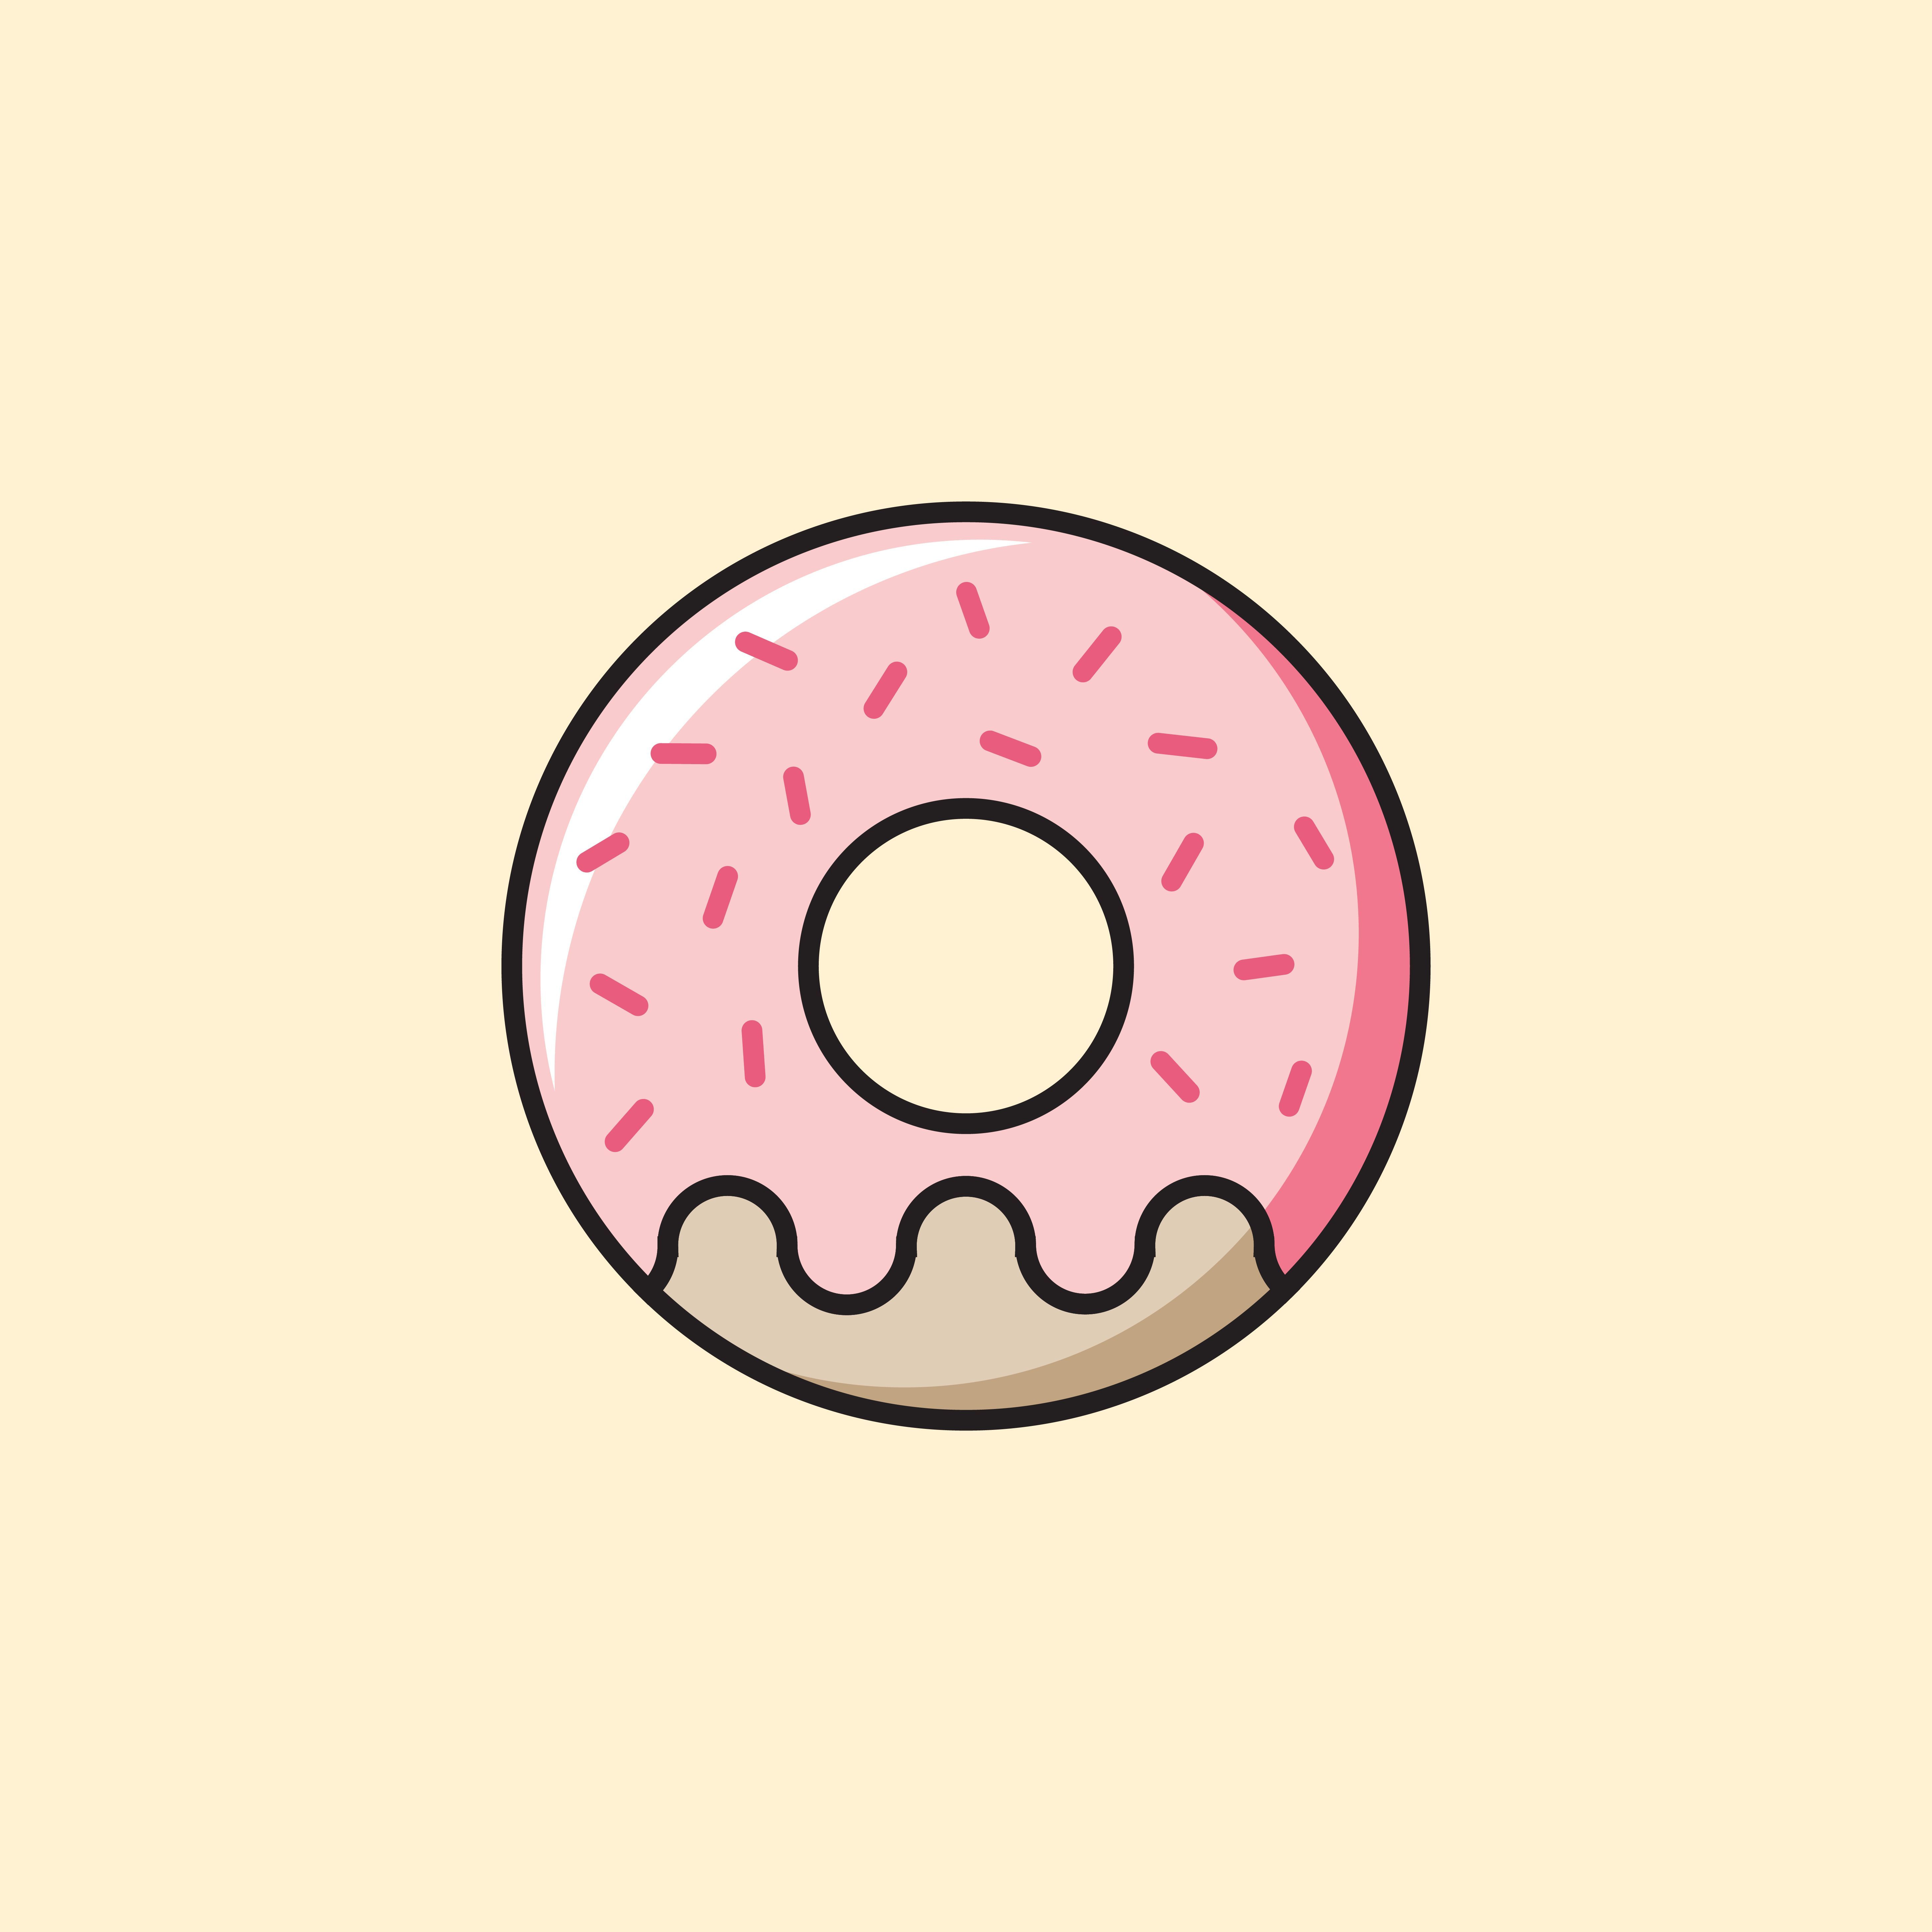 Cute Pink Donut Icon On Yellow Sticker By Ennbe In 2021 Doodle Drawings Illustration Design Kawaii Wallpaper